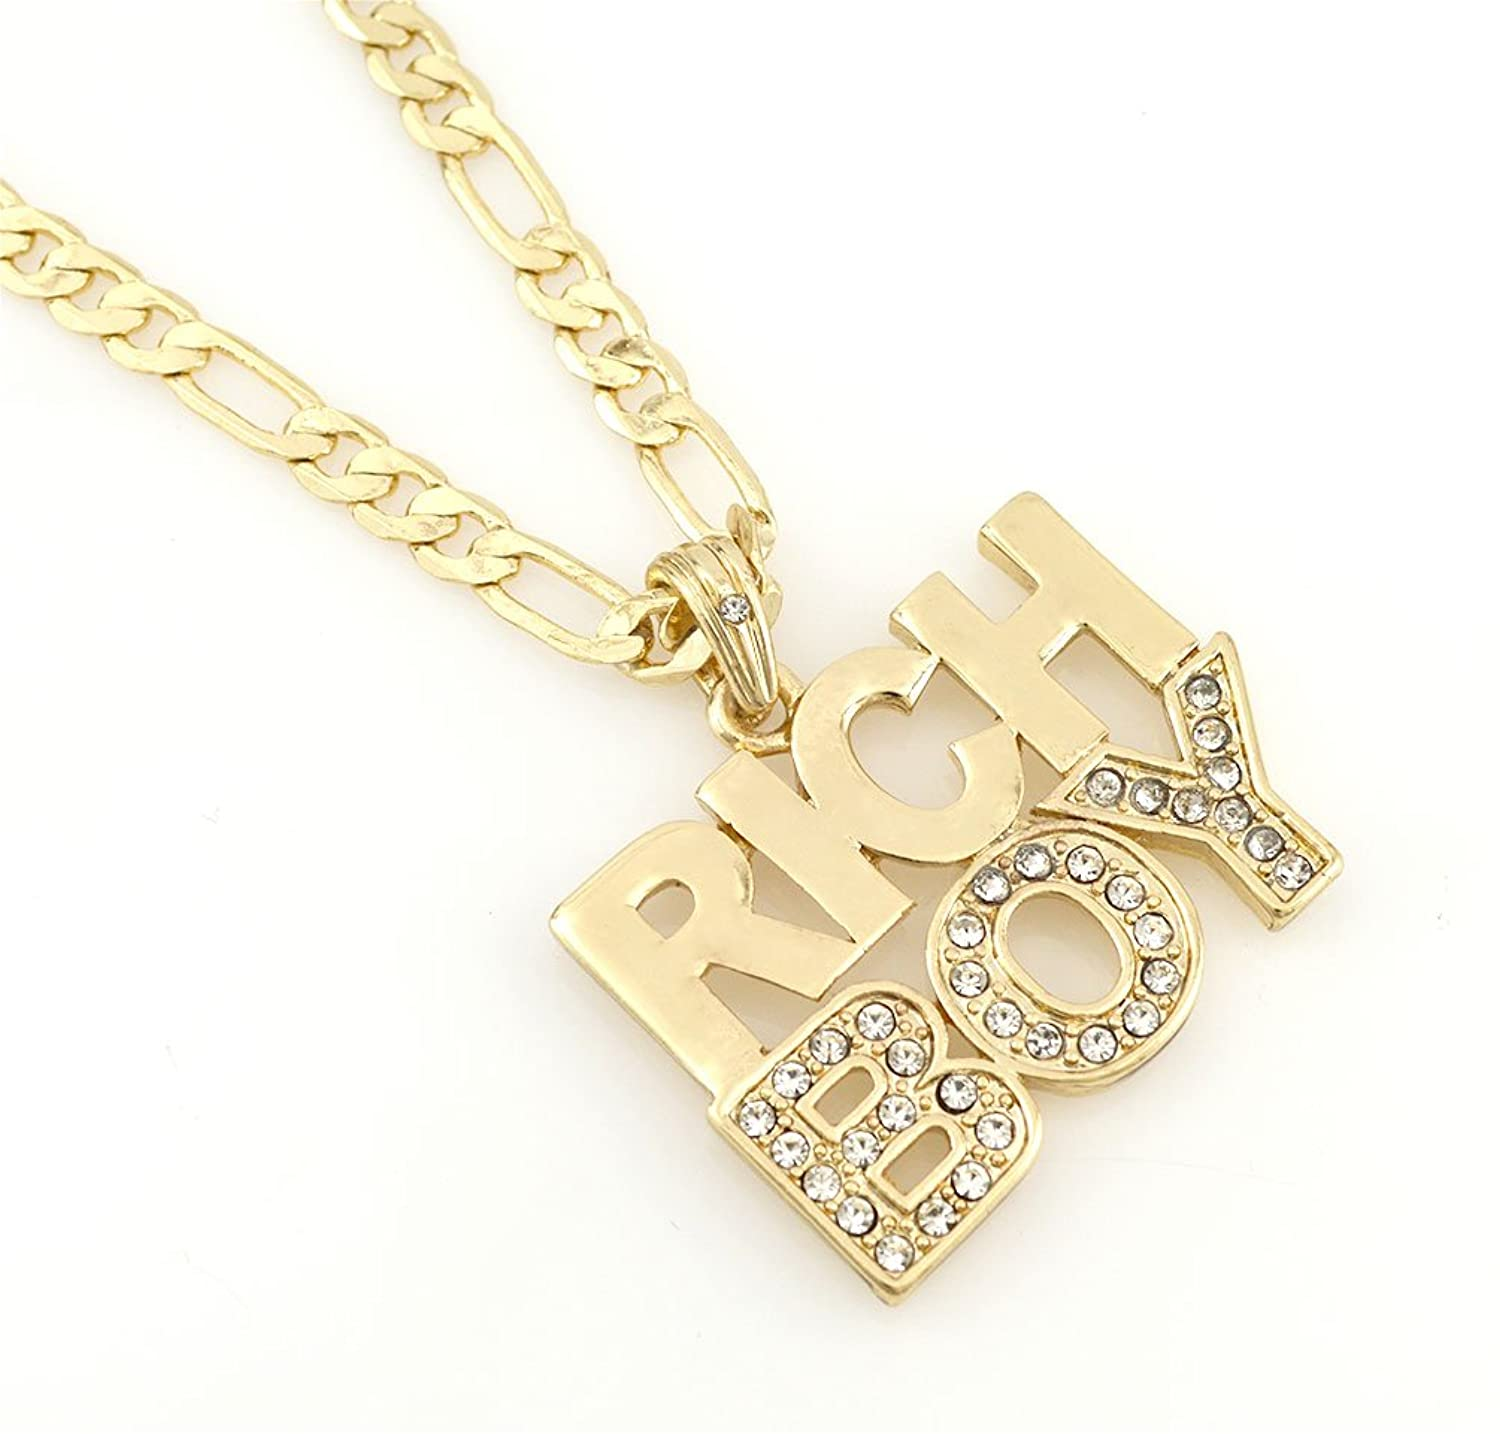 urban world g luck in ubn boy shop all boys necklace the